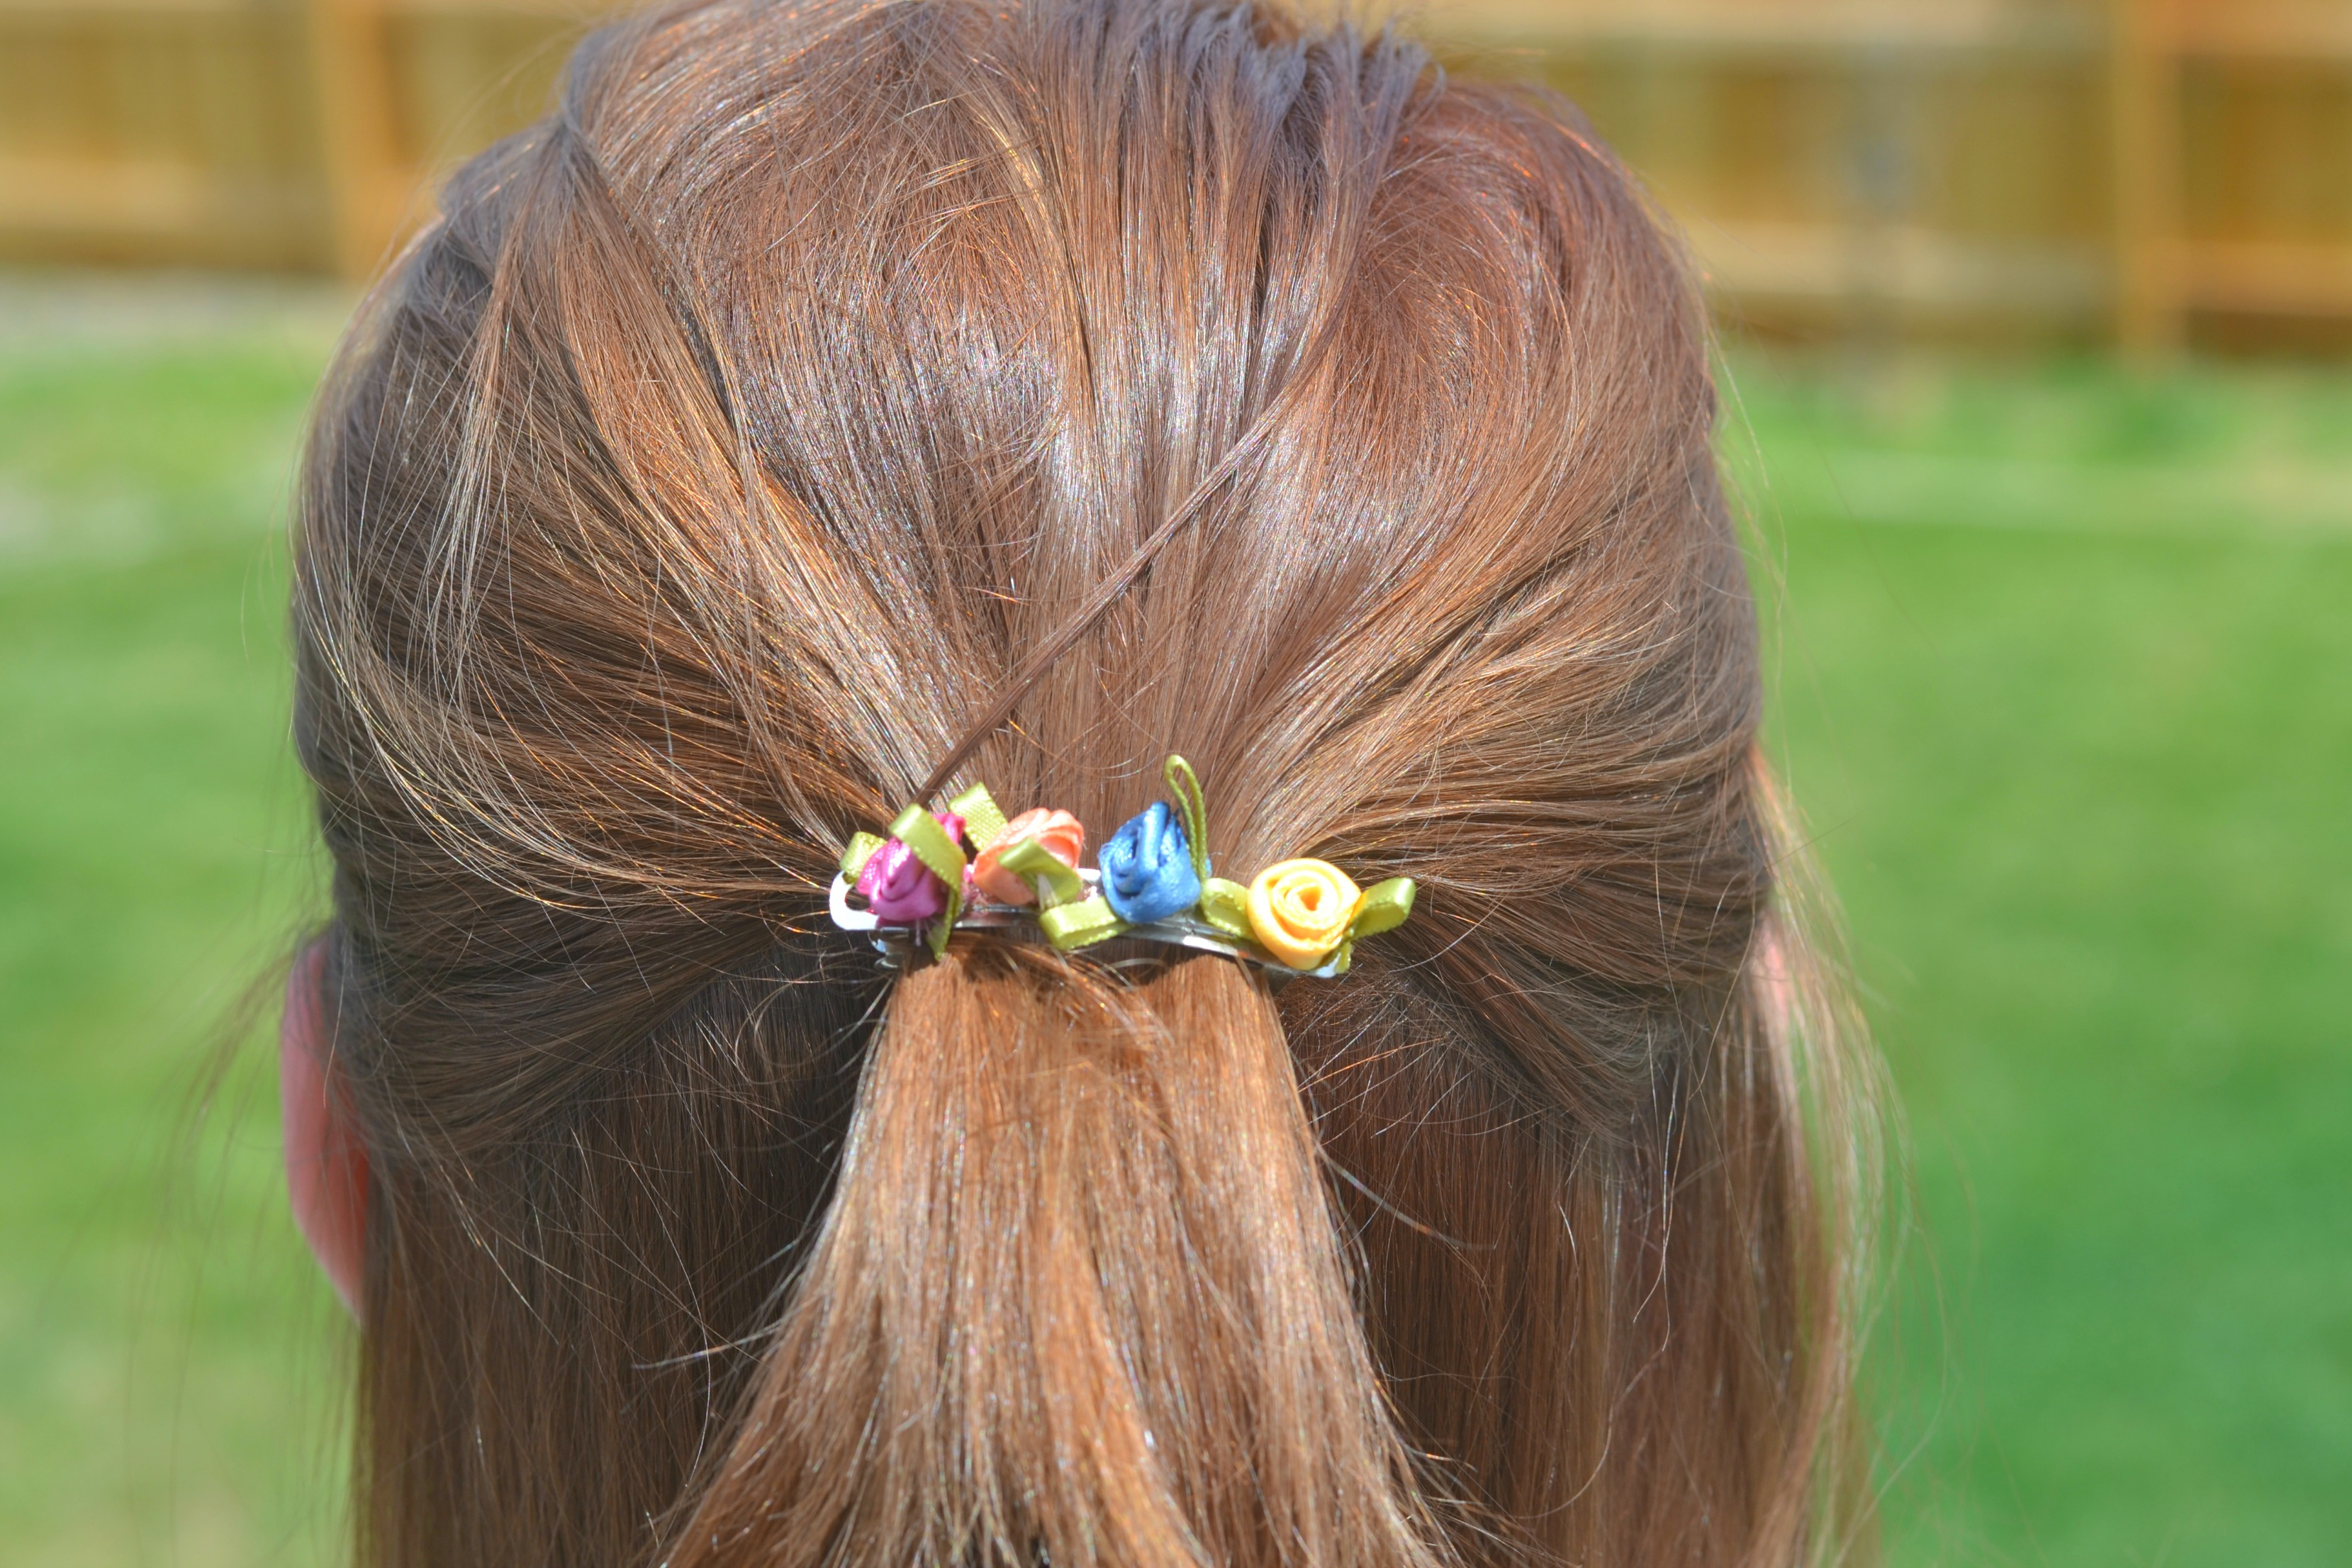 vibrant summer hair color, make your own hair clips, make your own floral hair clips, diy hair accessories, diy hair clips, easy DIY hair accessories, Hair colors for summer, color your hair at home, beauty tips, hair tips, how to dye your hair at home